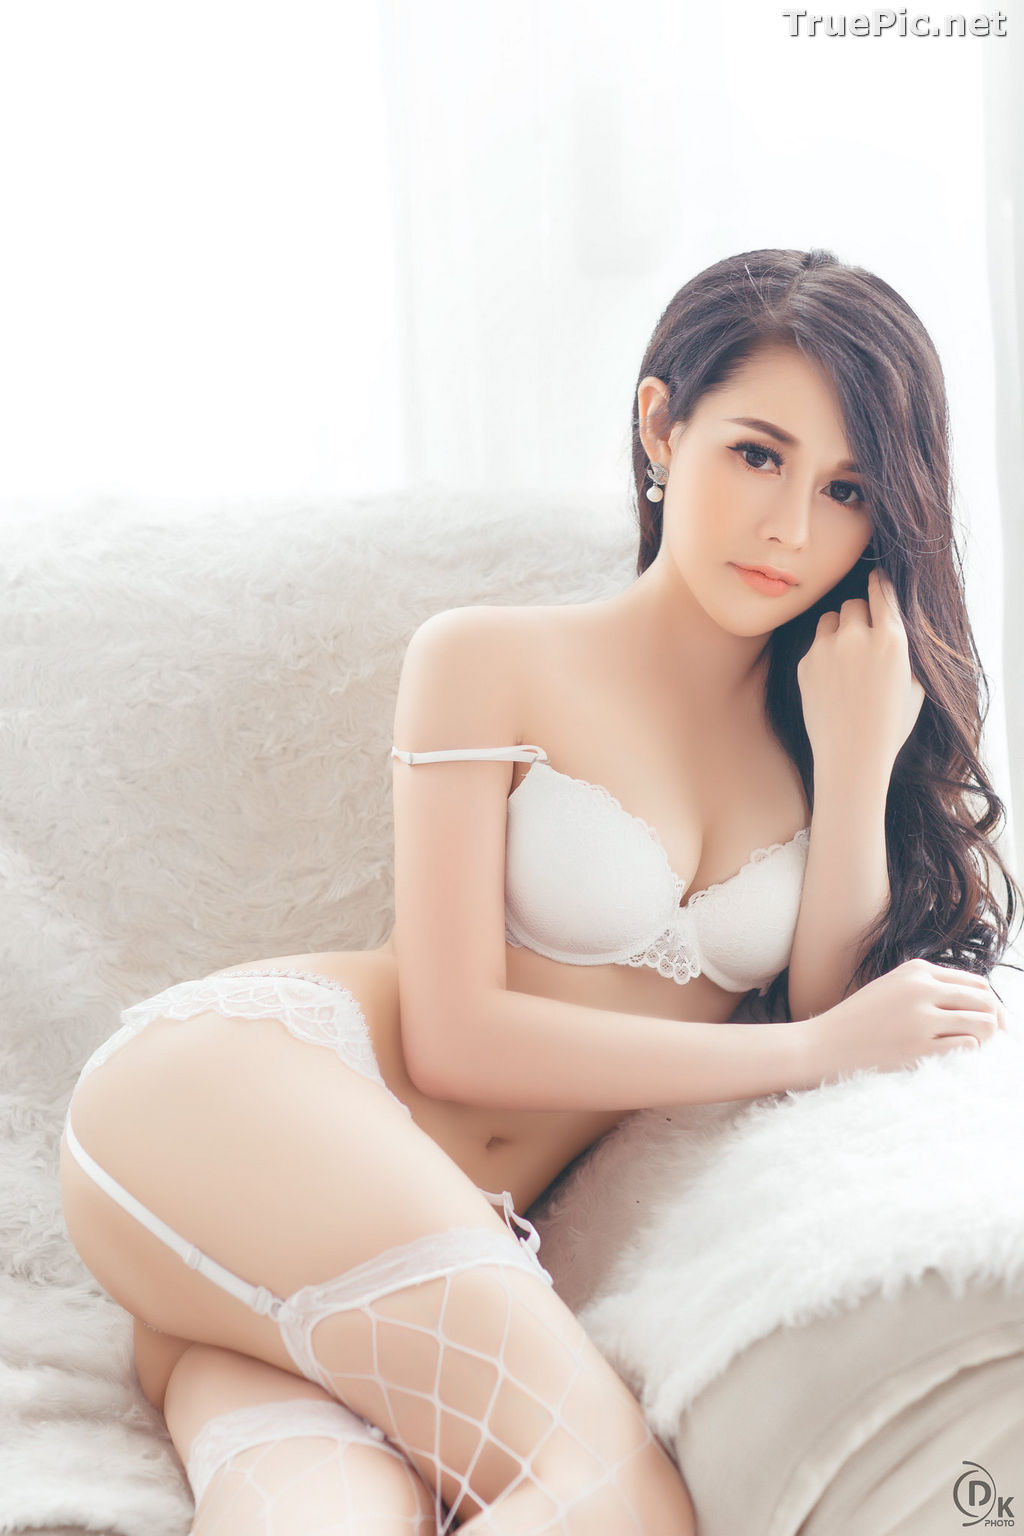 Image The Beauty of Vietnamese Girls – Photo Collection 2020 (#15) - TruePic.net - Picture-5